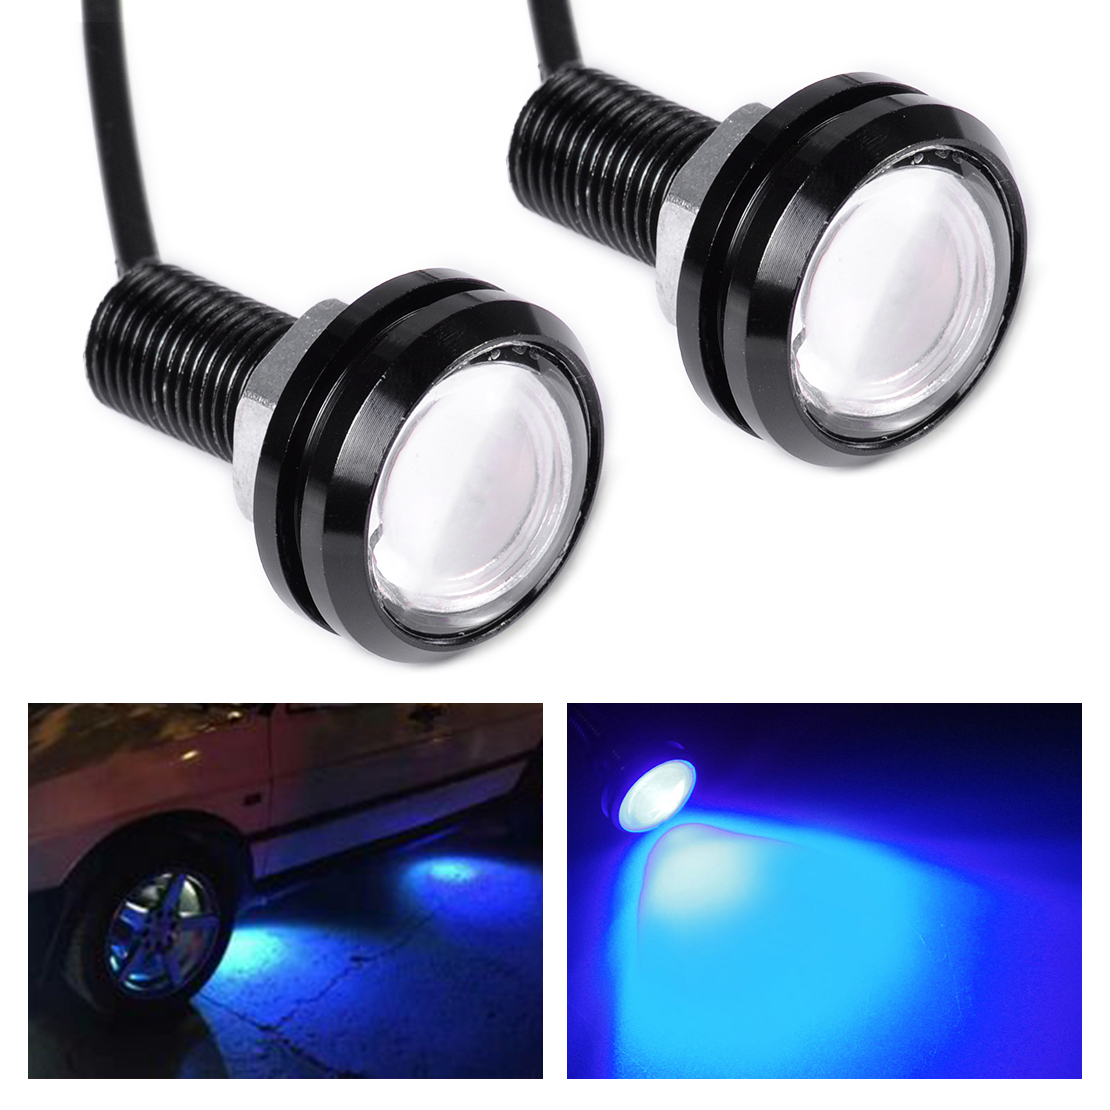 Car Light Assembly Leadtops 2pcs Car Led Drl 23mm Eagle Eye Daytime Running Light Car Lamps 12v External Styling Automobiles & Motorcycles Light Motorcycle Light Bj